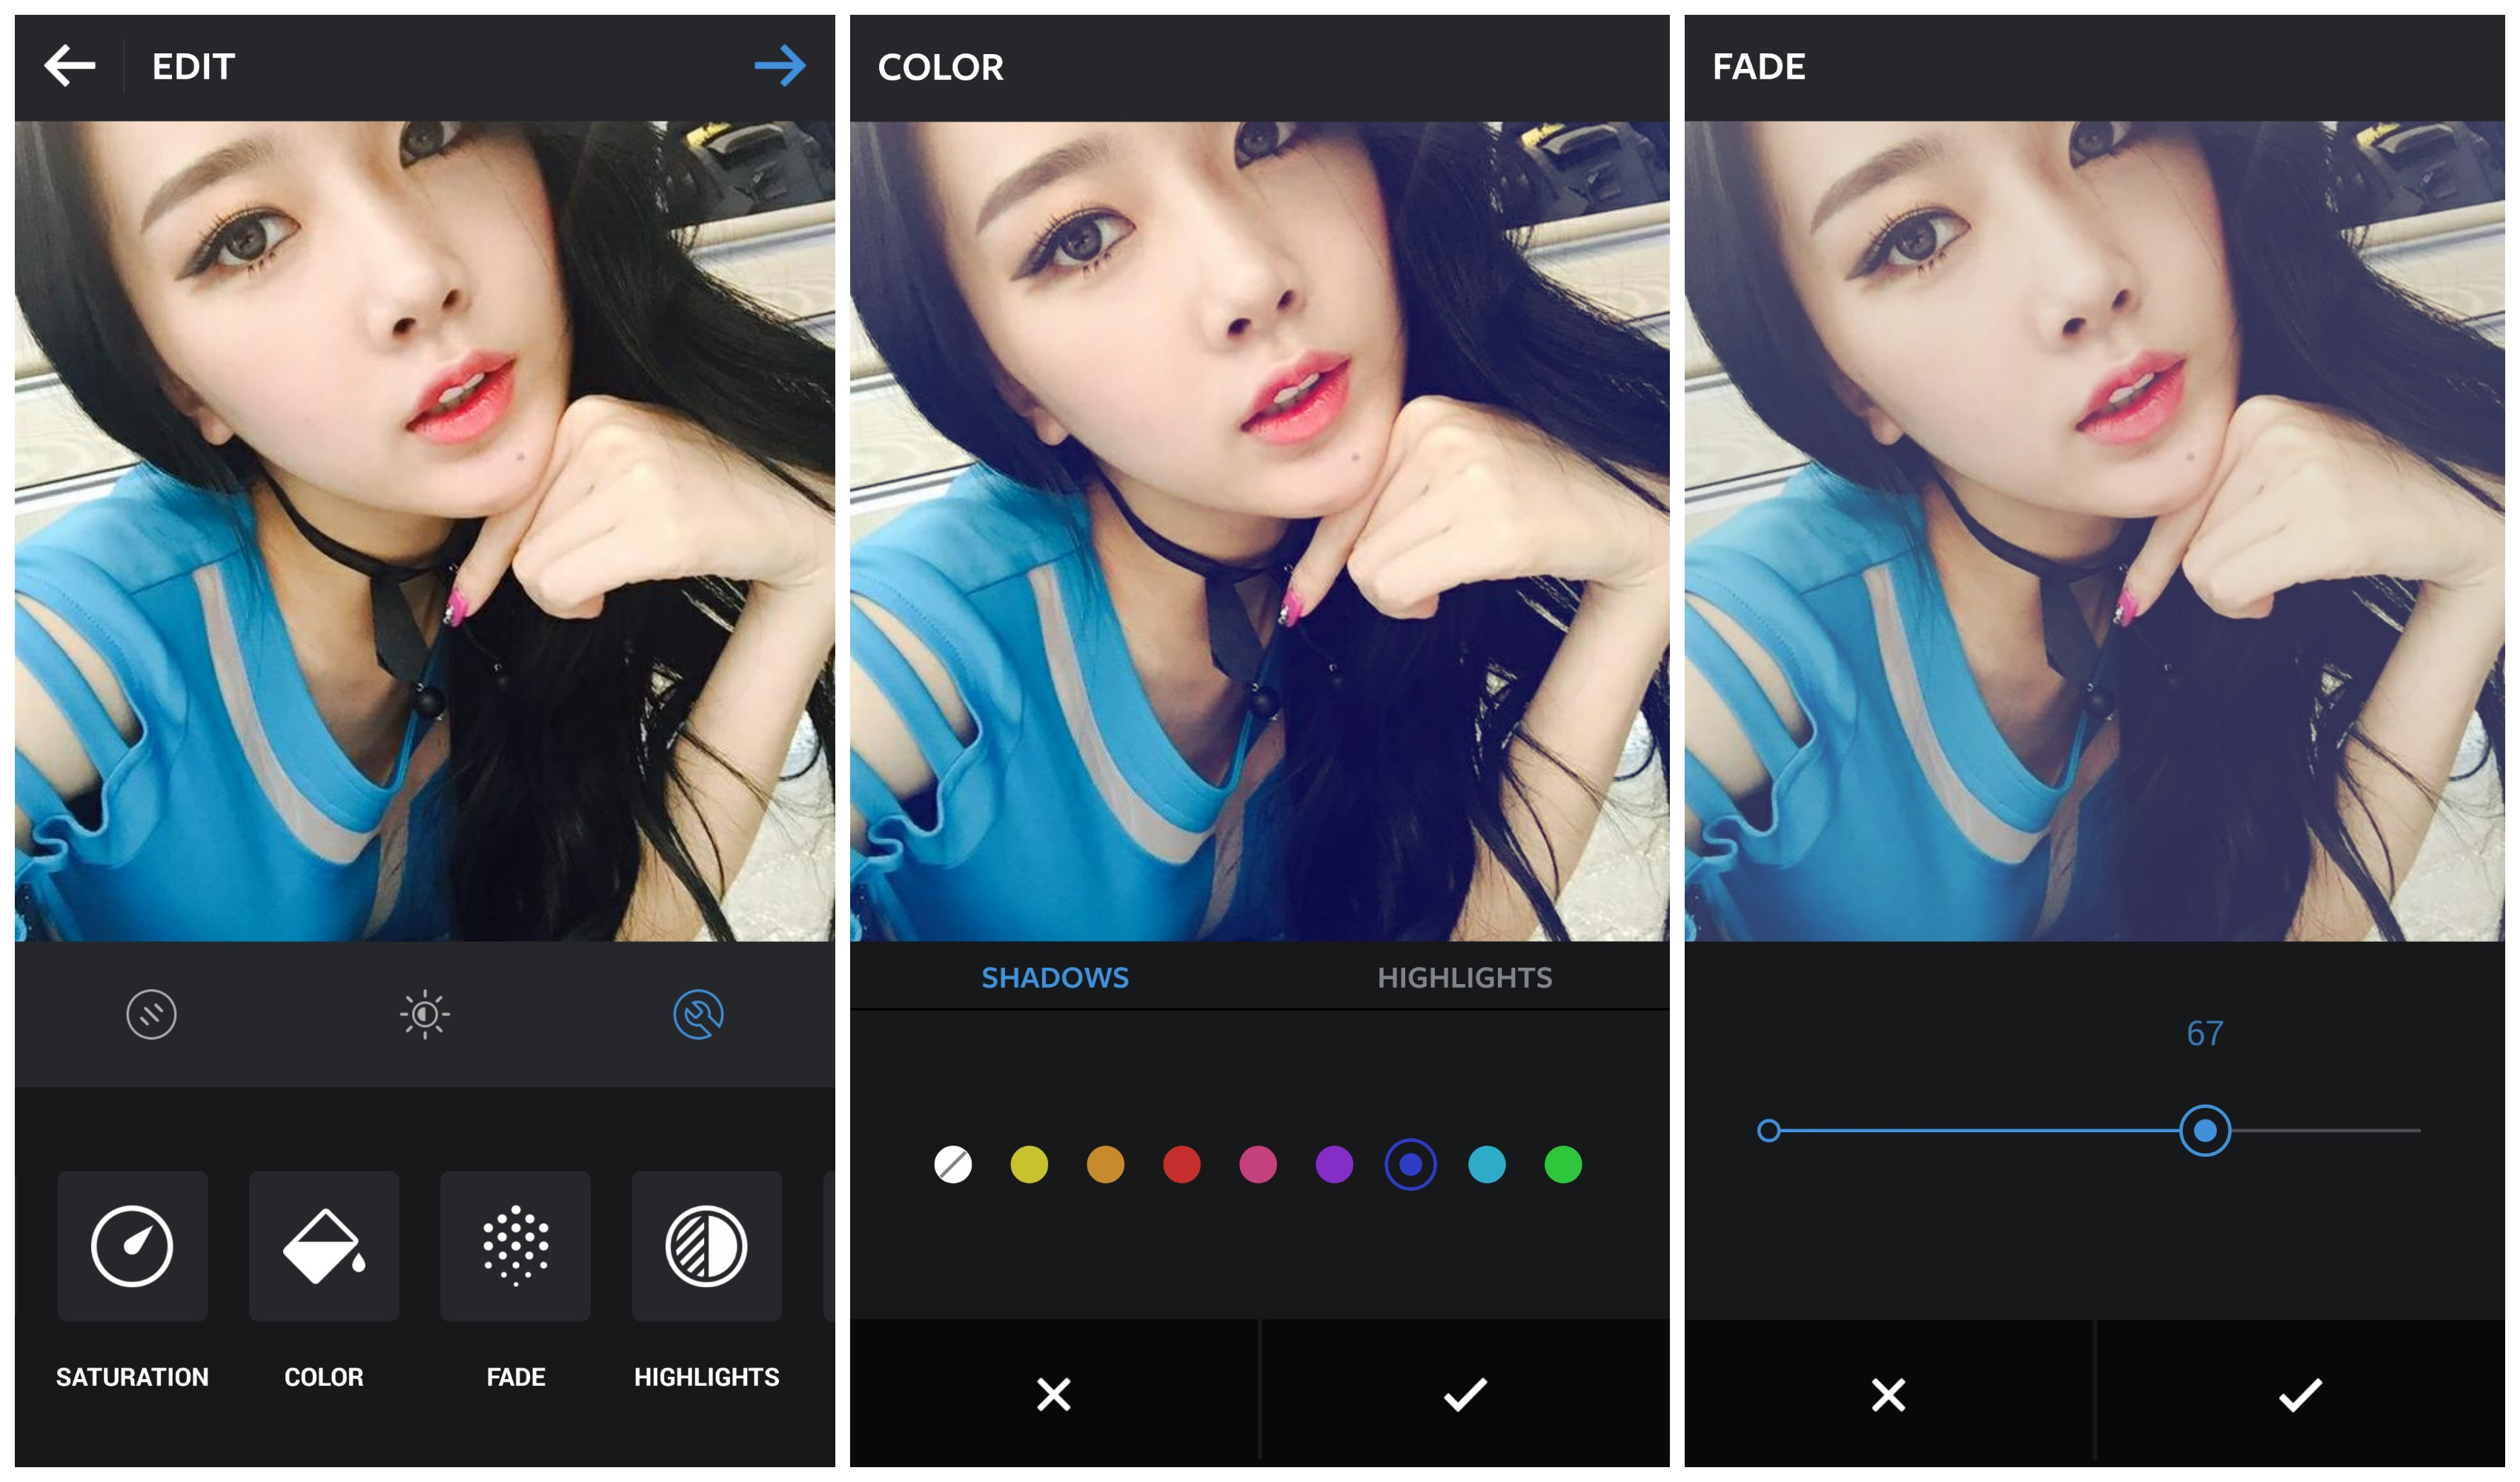 Instagram brings new photo editing tools to Android first